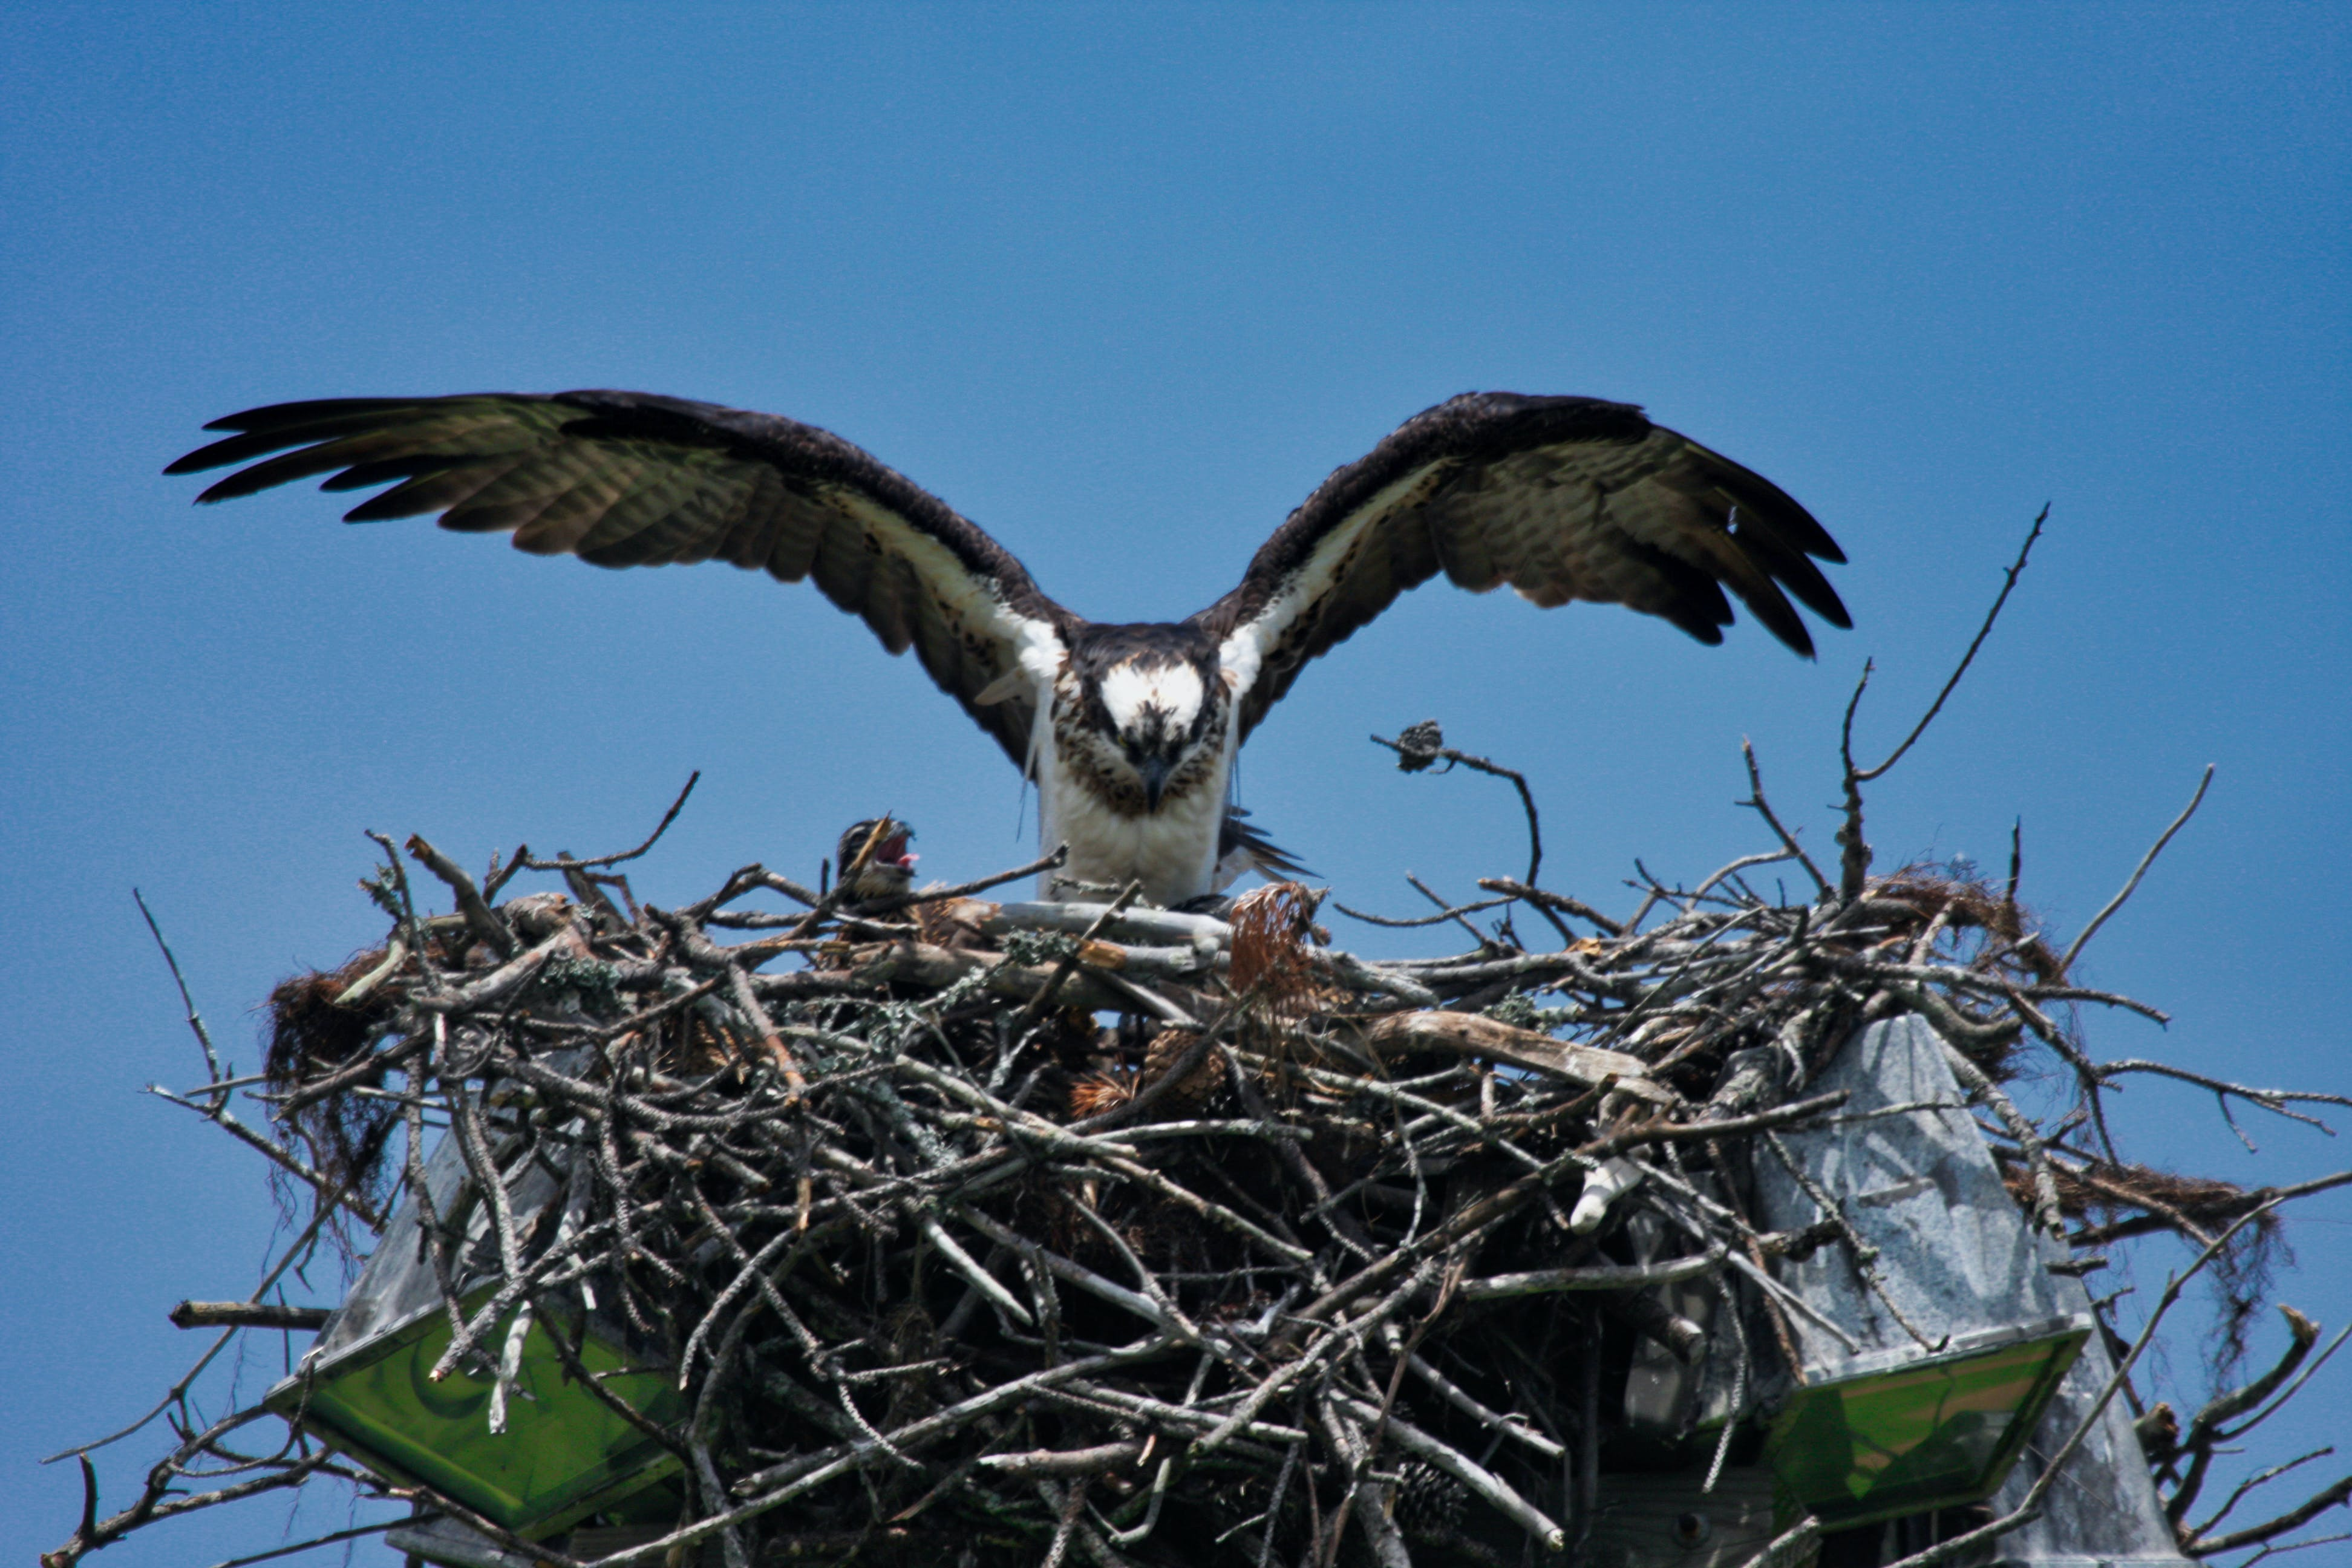 Free stock photo of osprey, Osprey and chick, Osprey on Nest